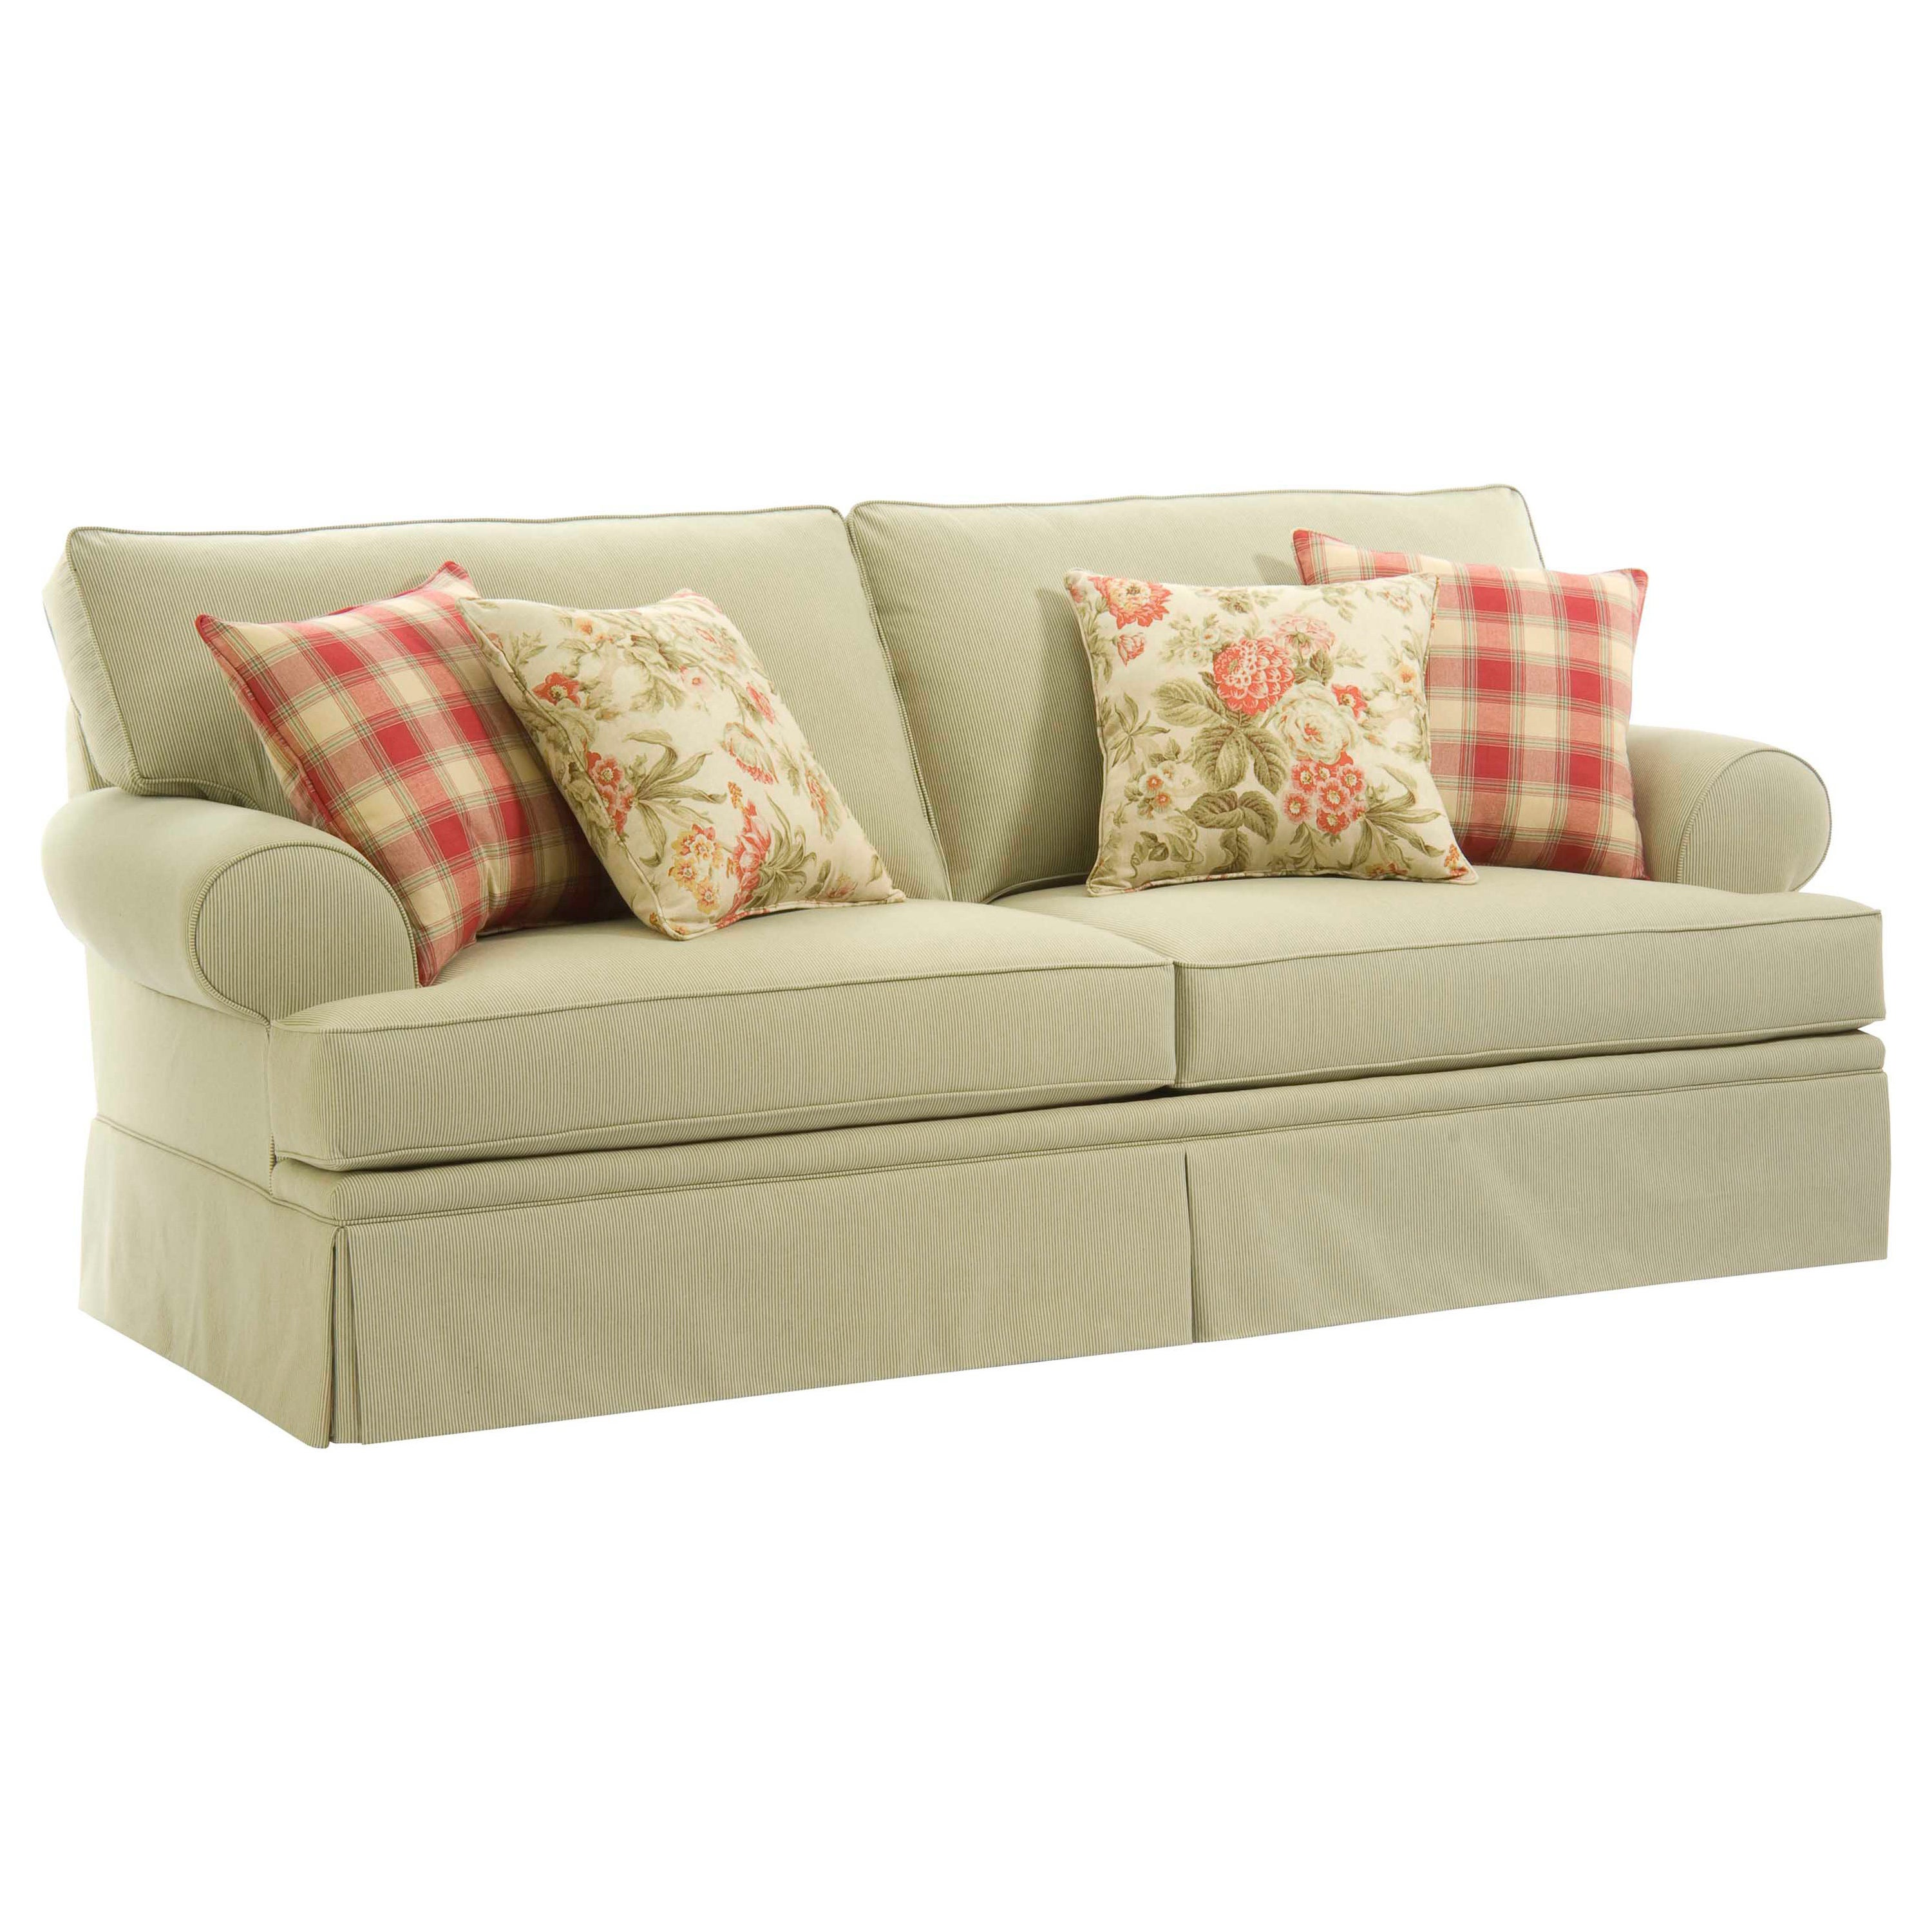 Broyhill 'Emma' Corriander Sage Sofa And Accent Pillows